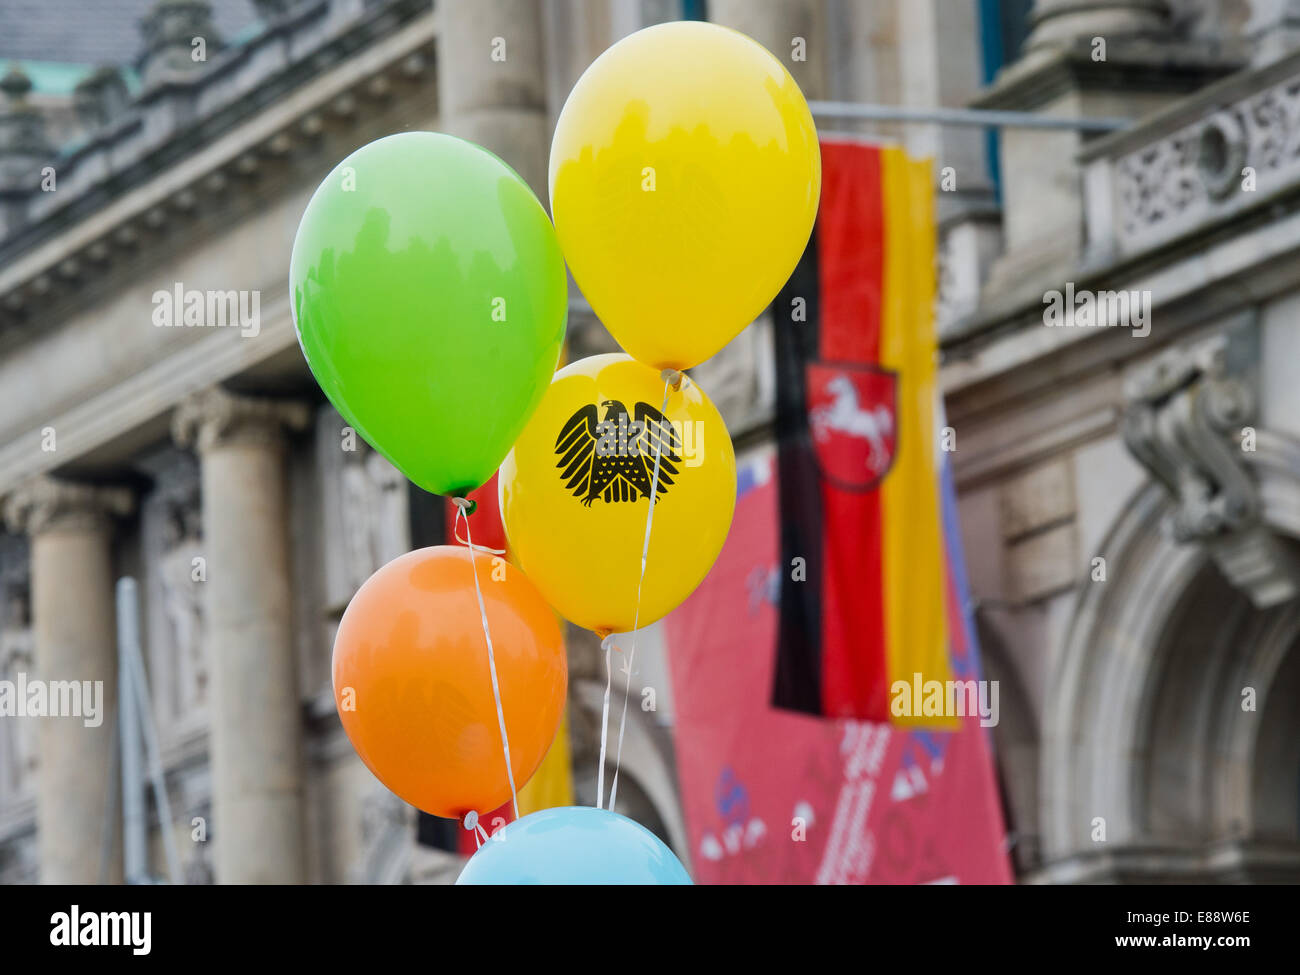 Balloons with a German Eagle at the citizens' festival for Day of German Unity in Hanover,Germany, 02 - Stock Image